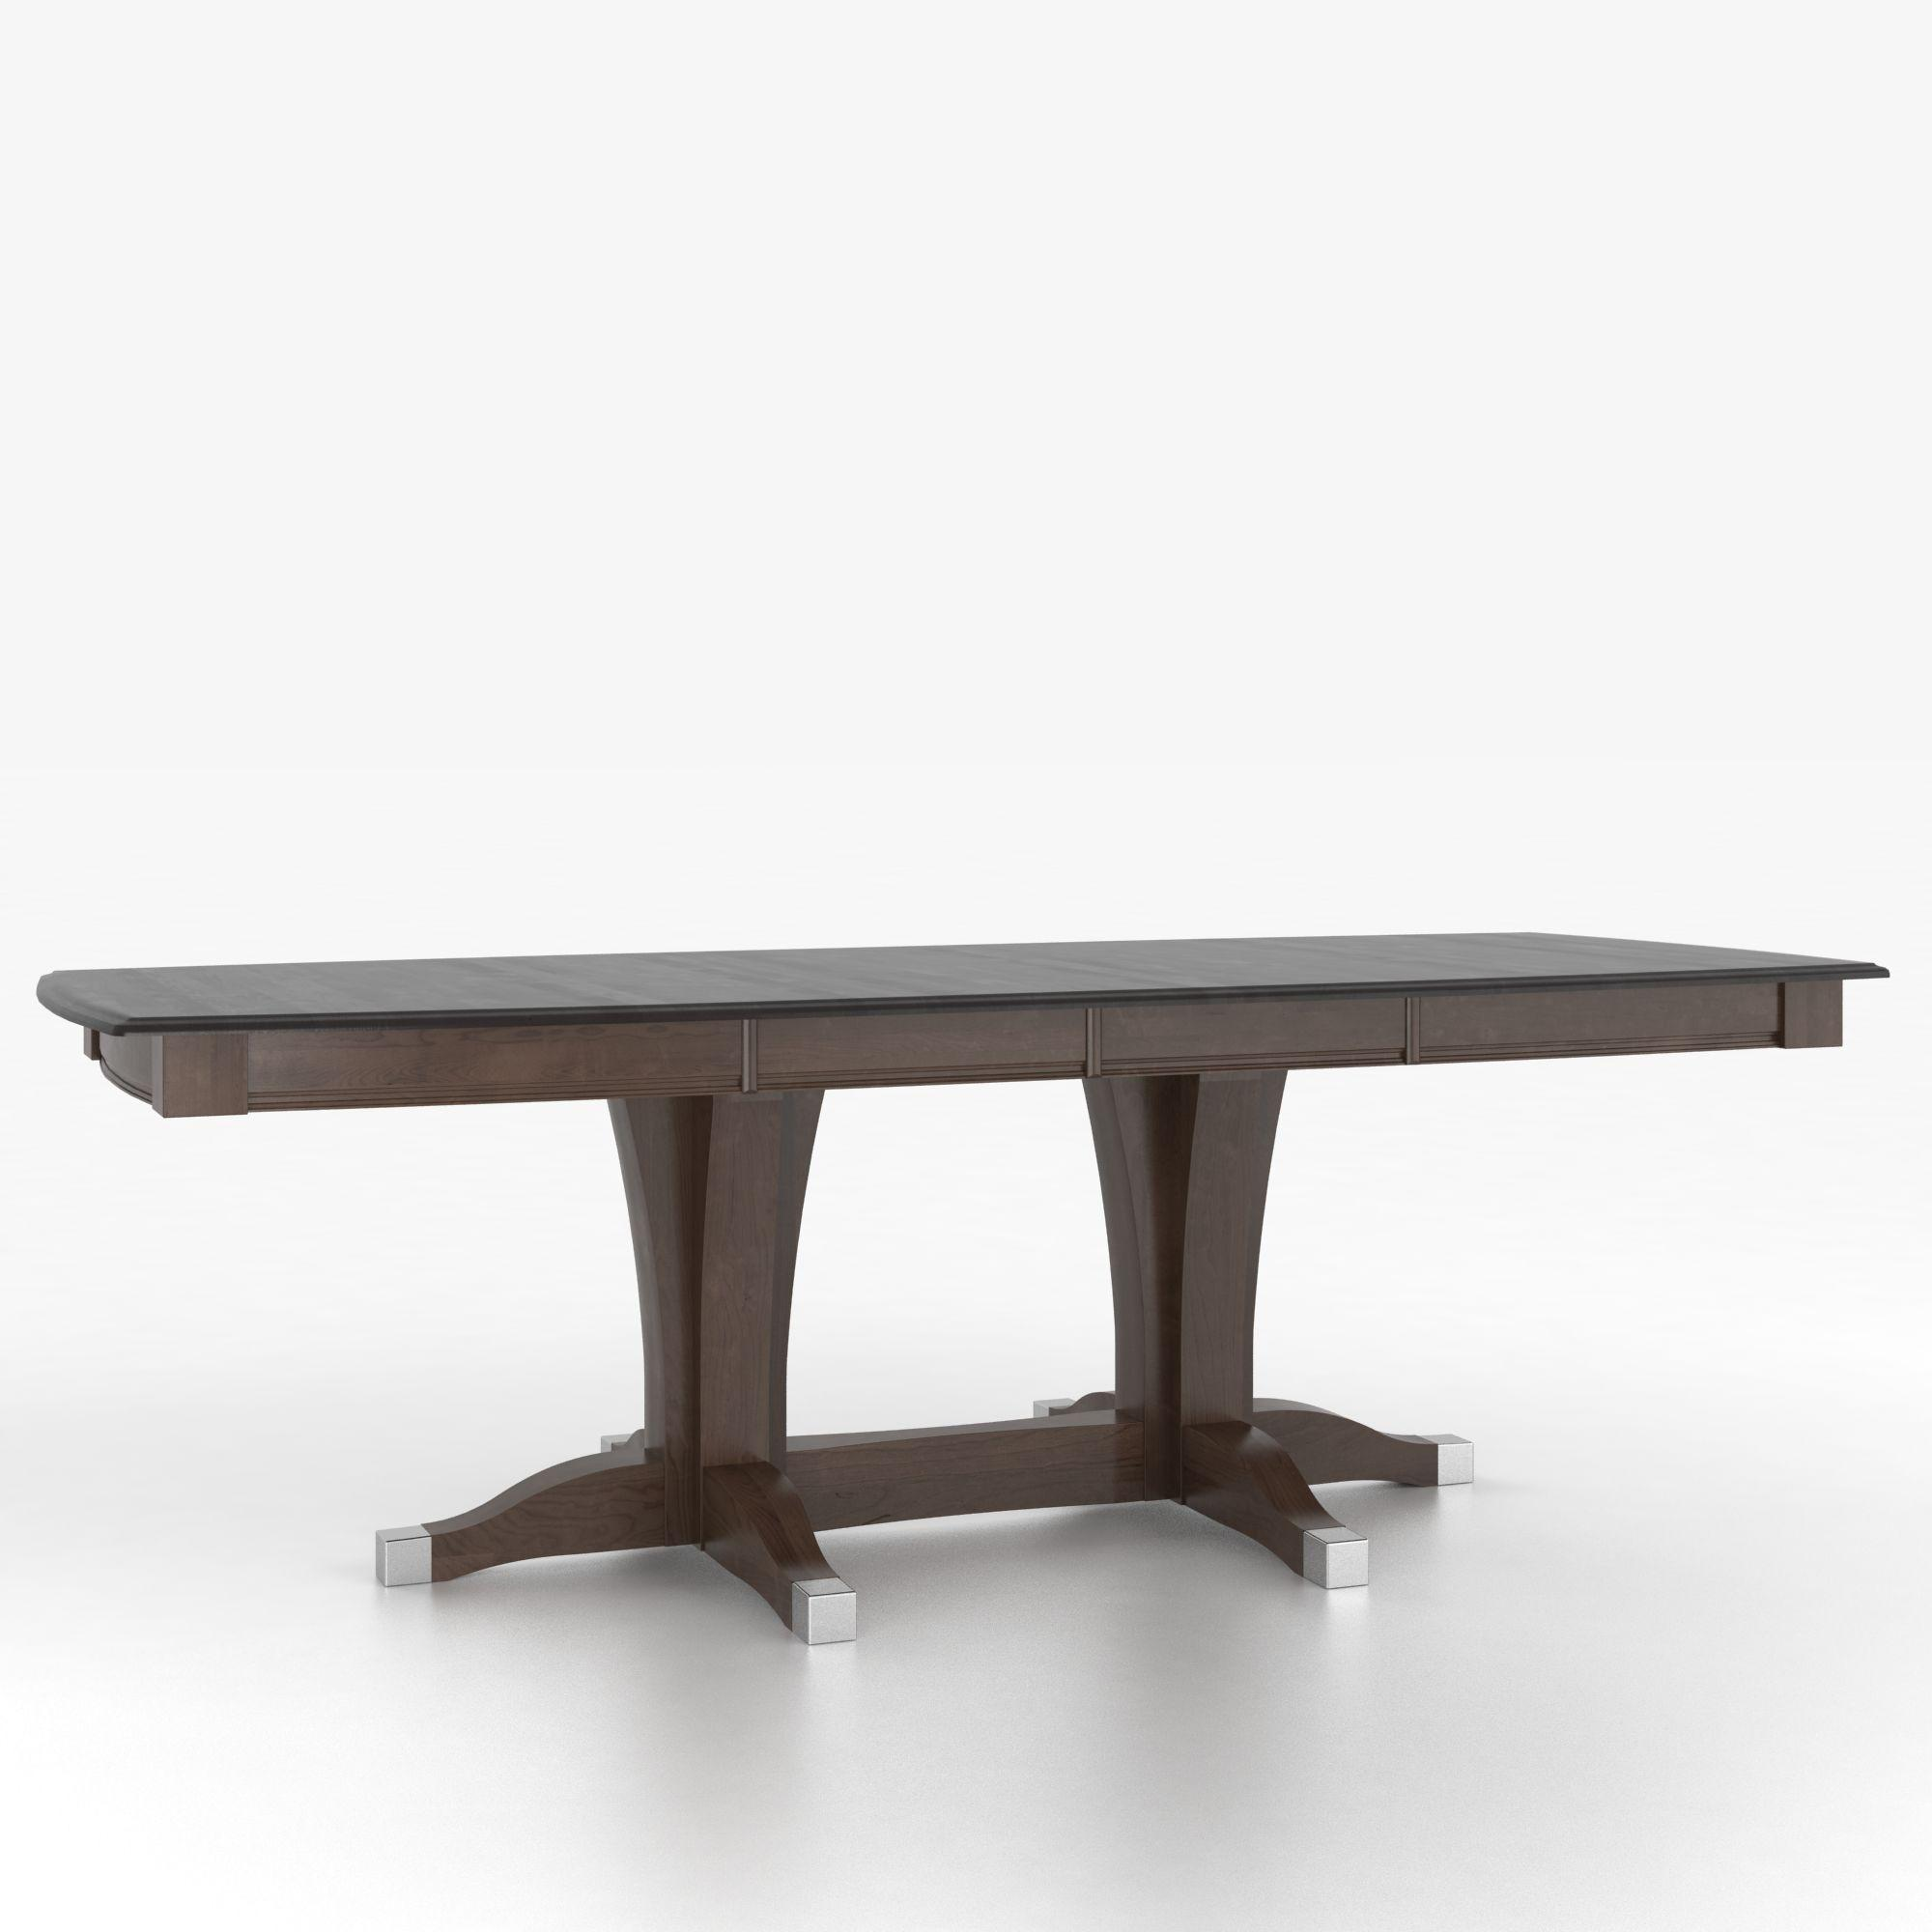 Canadel Custom Dining Tables Tbs038683429mxaa2 Customizable Boat Shape Table With Pedestal